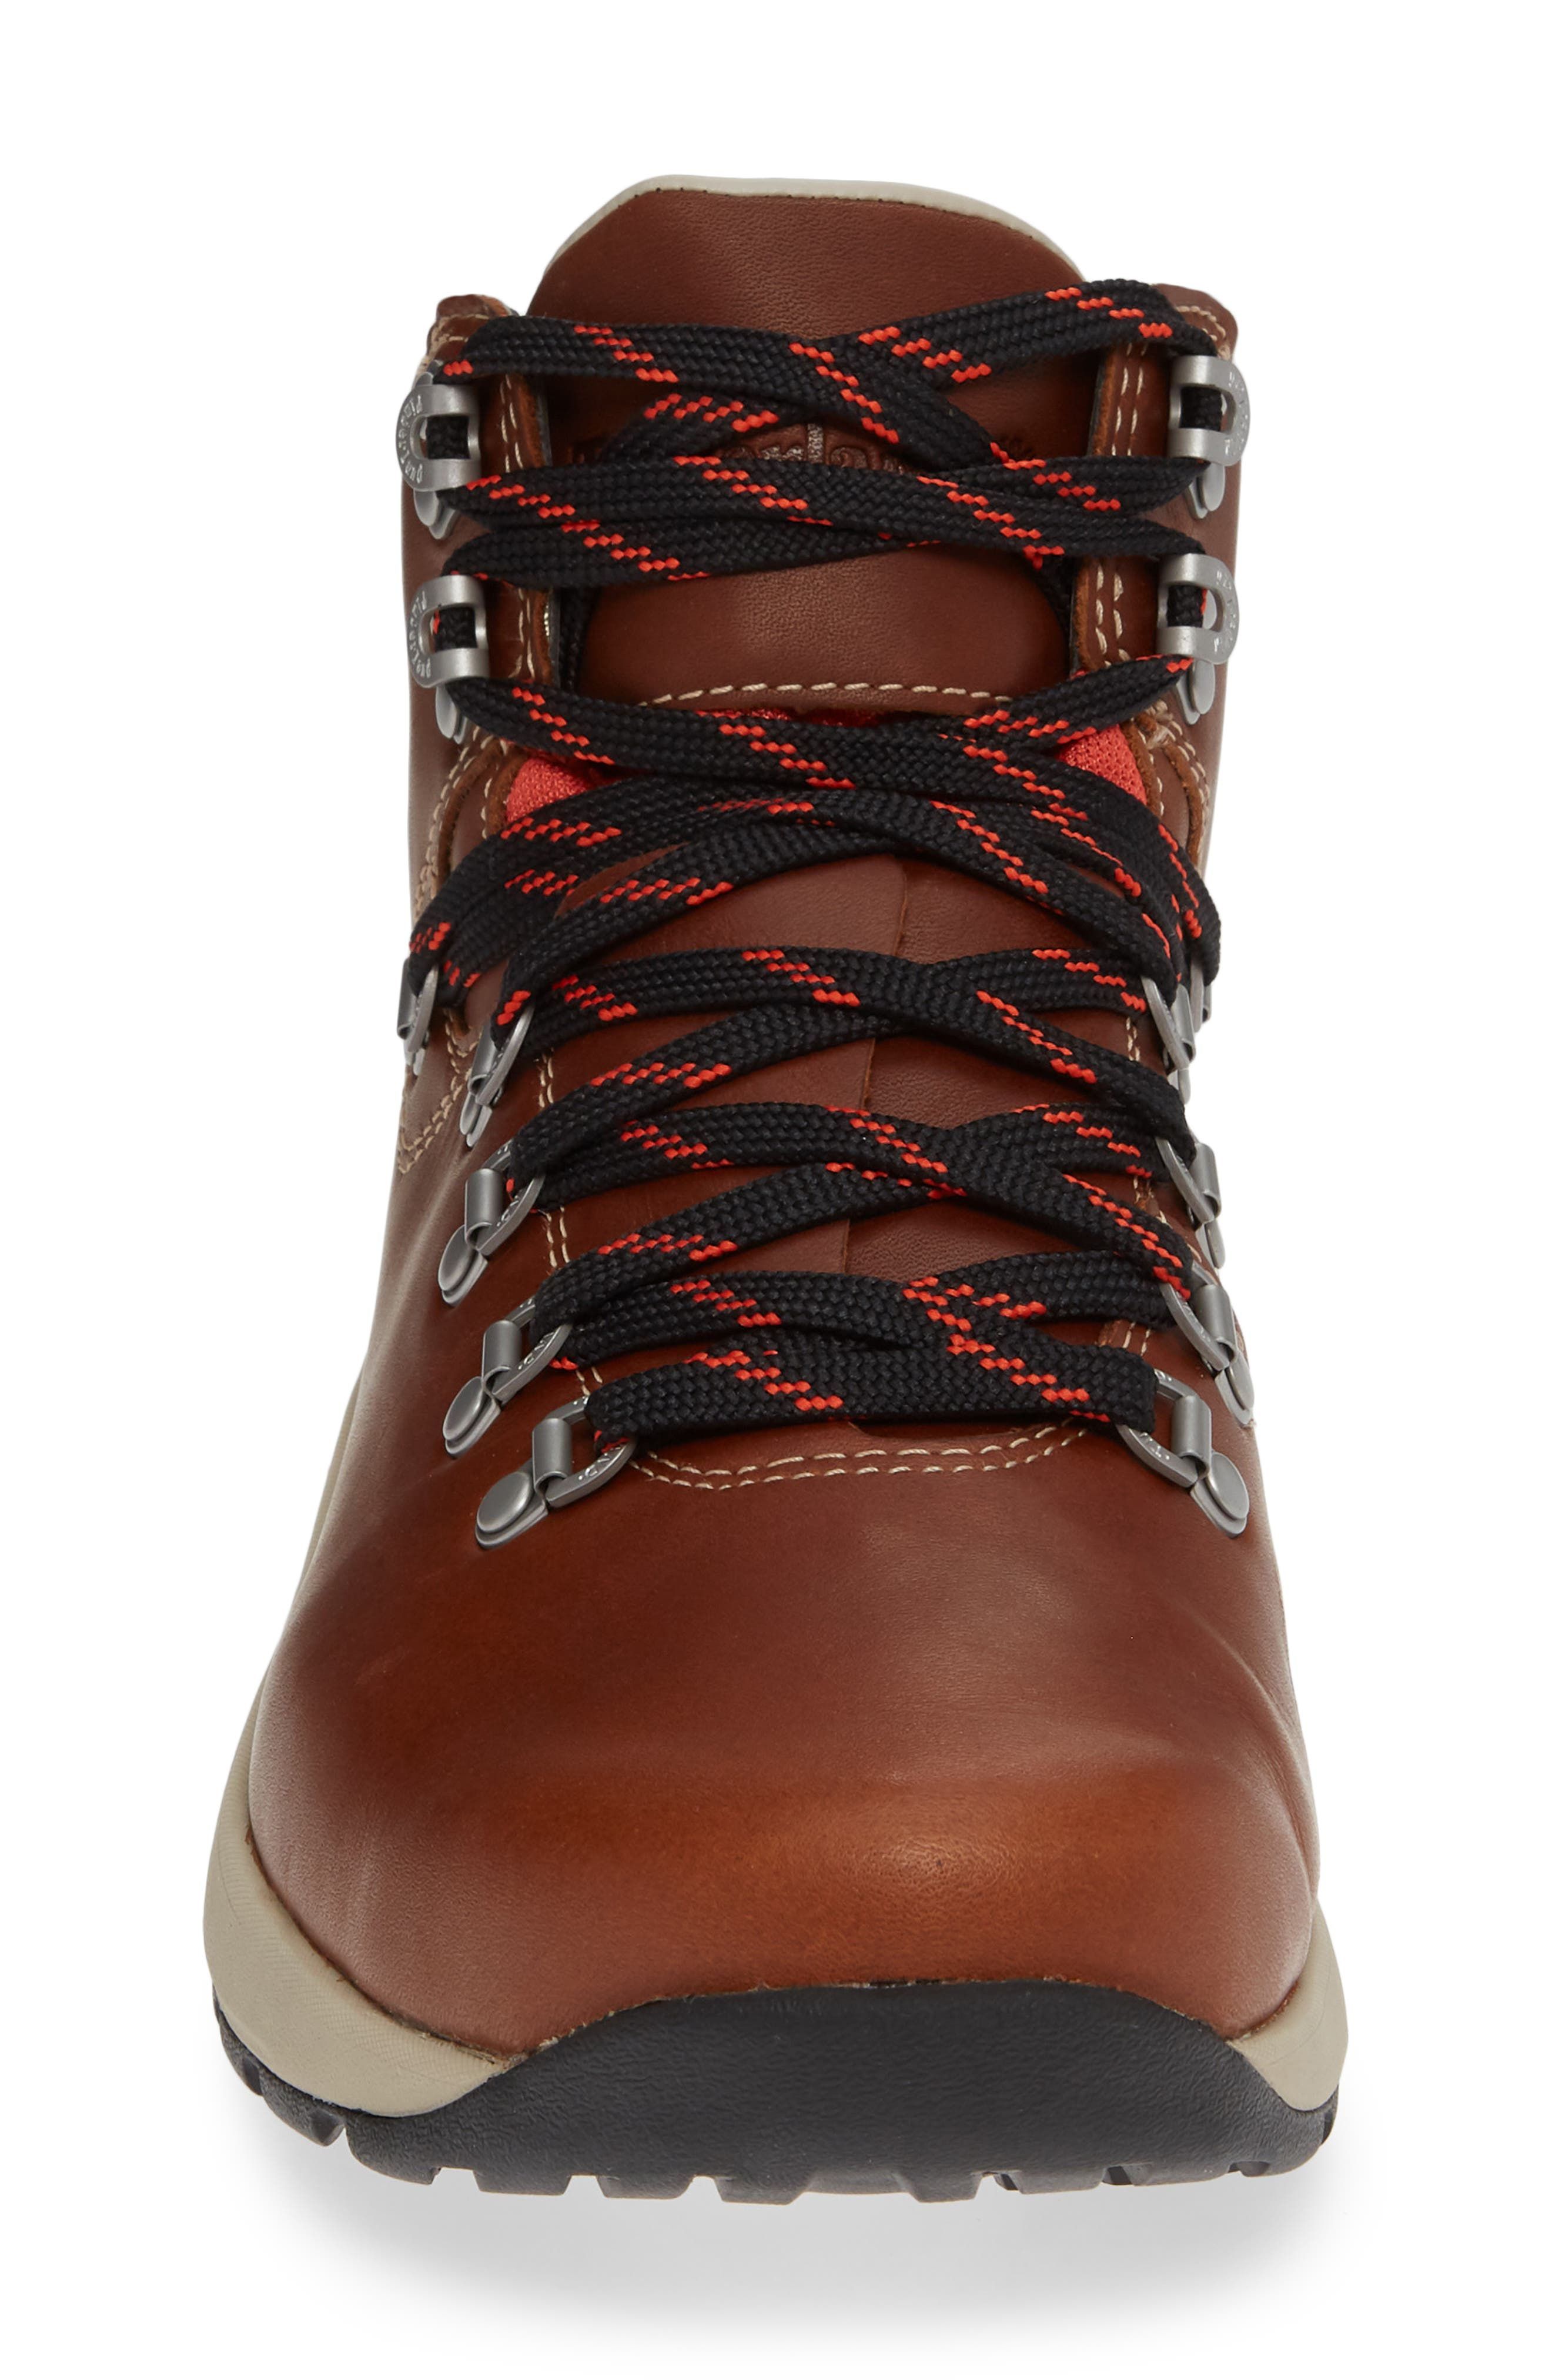 1978 Aerocore Waterproof Hiking Boot,                             Alternate thumbnail 4, color,                             BROWN LEATHER